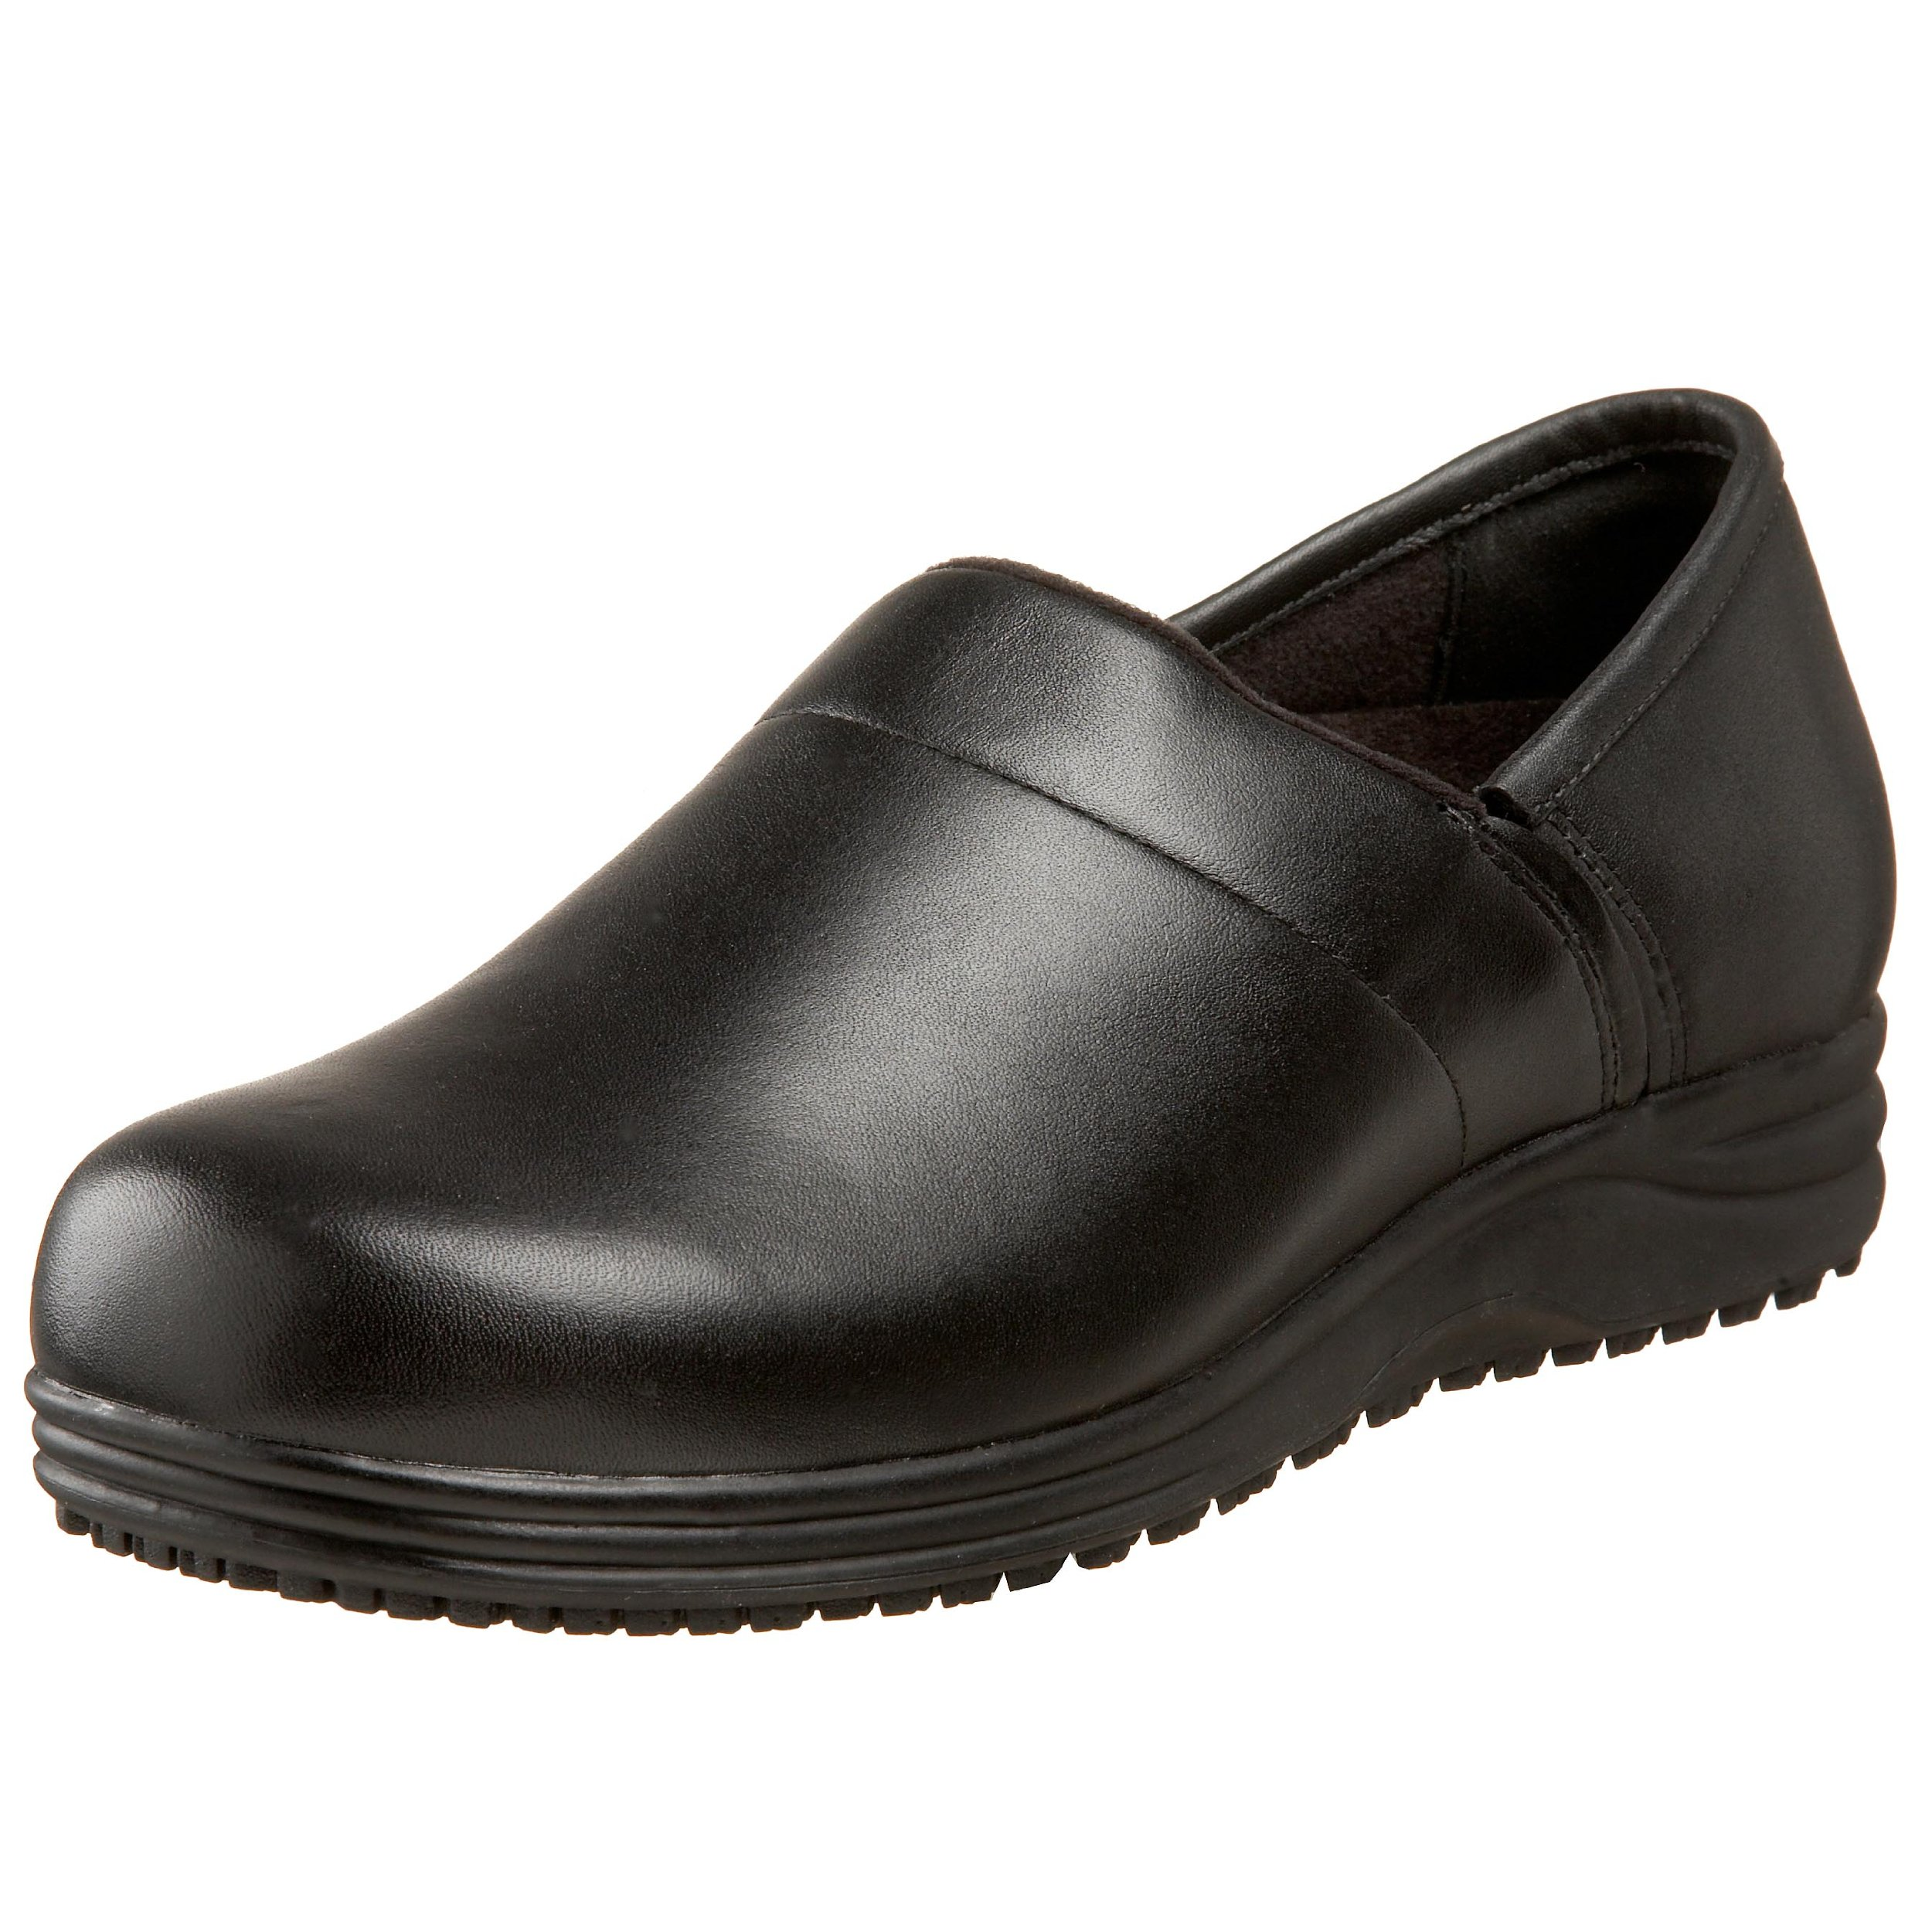 Standing Comfort Women's Breeze Clogs,Black,7 W by Standing Comfort